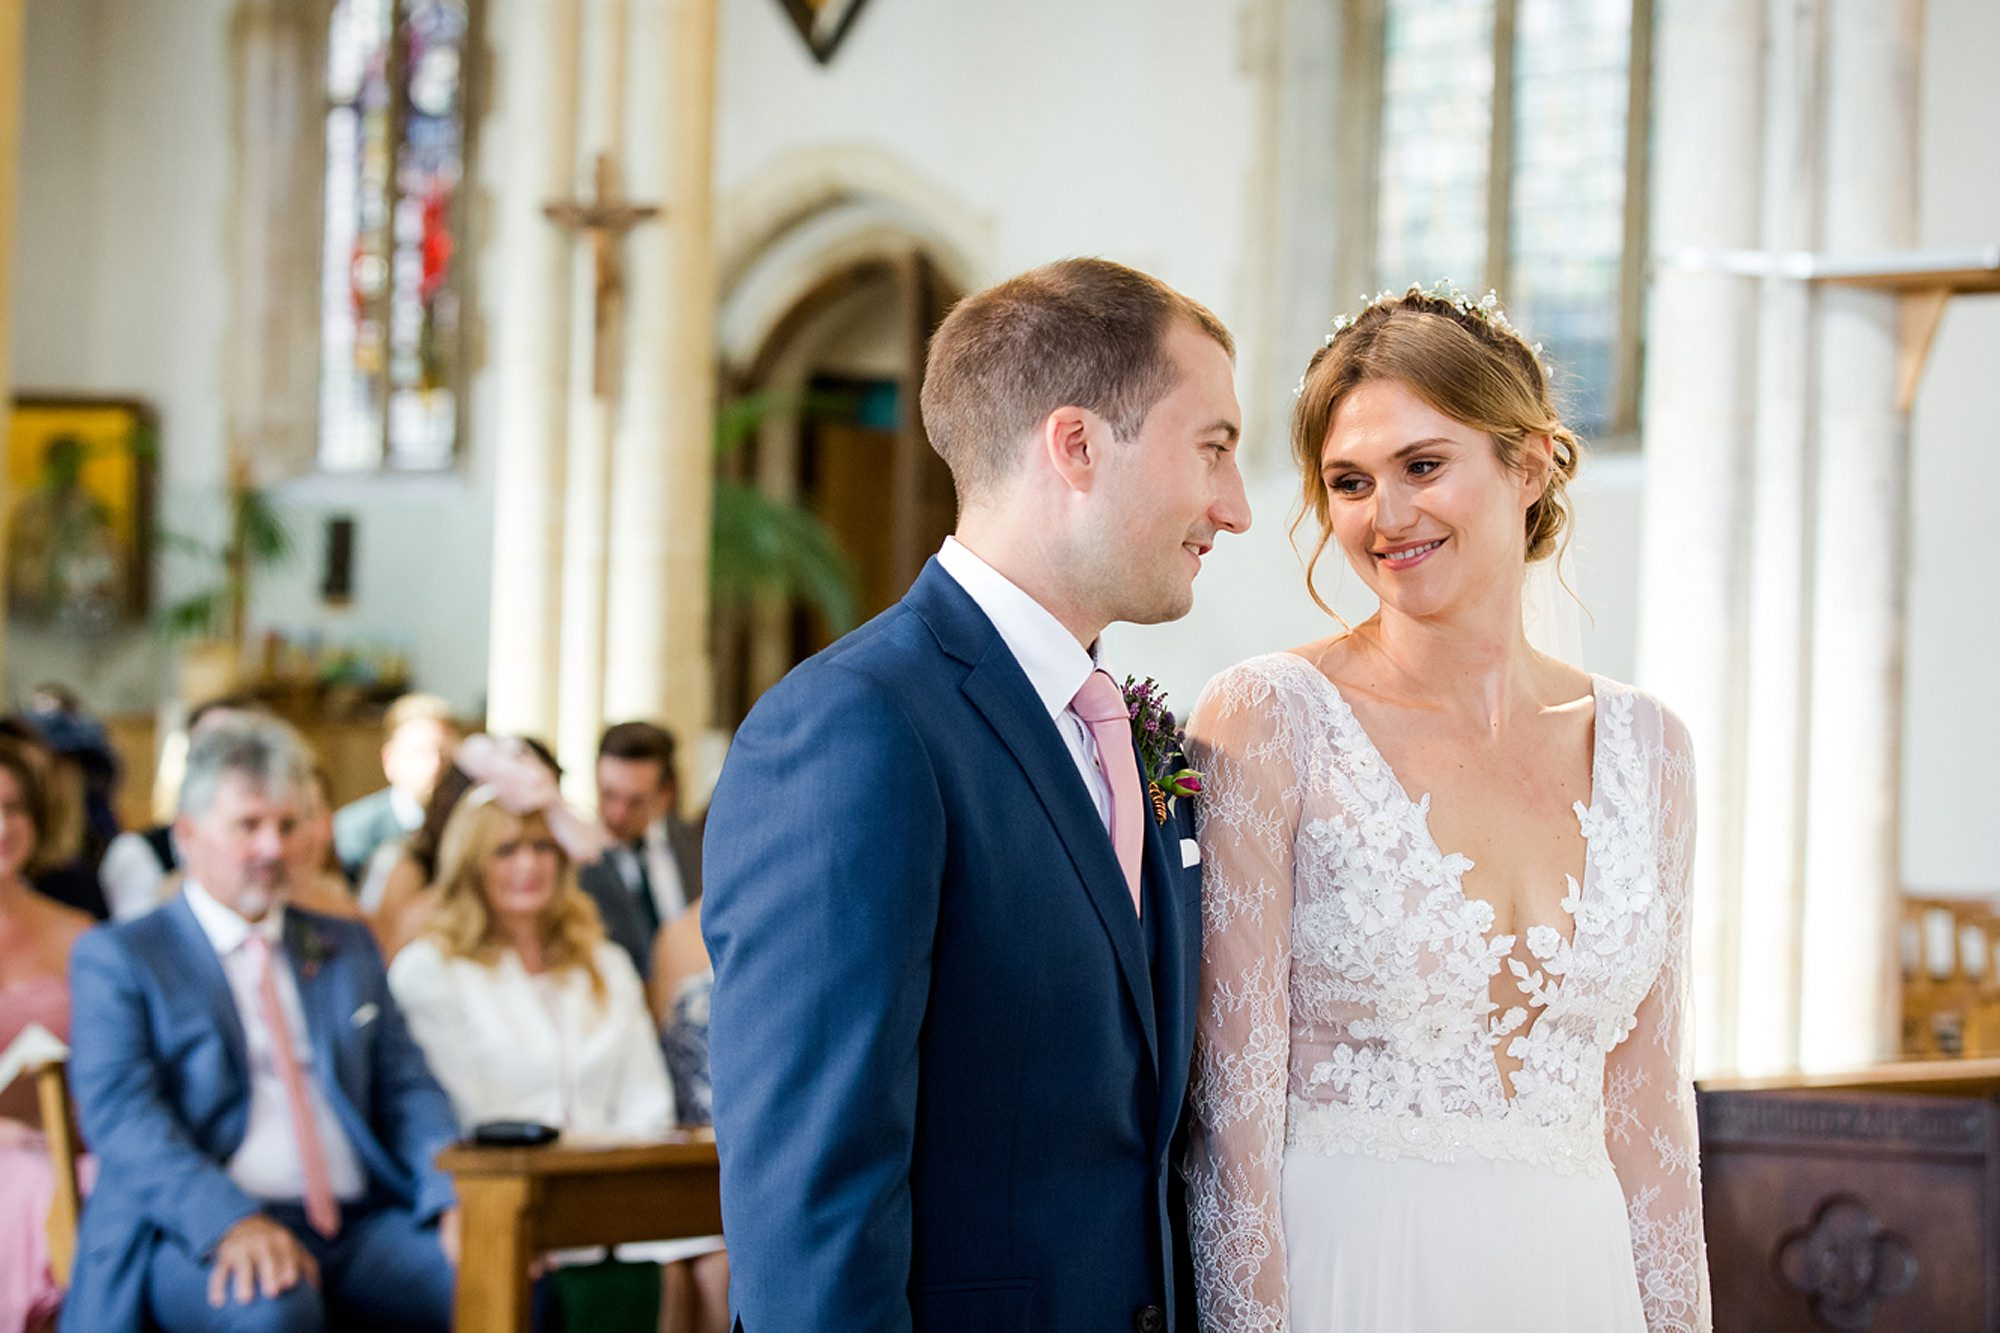 Marks Hall Estate wedding photography bride and groom smile during ceremony